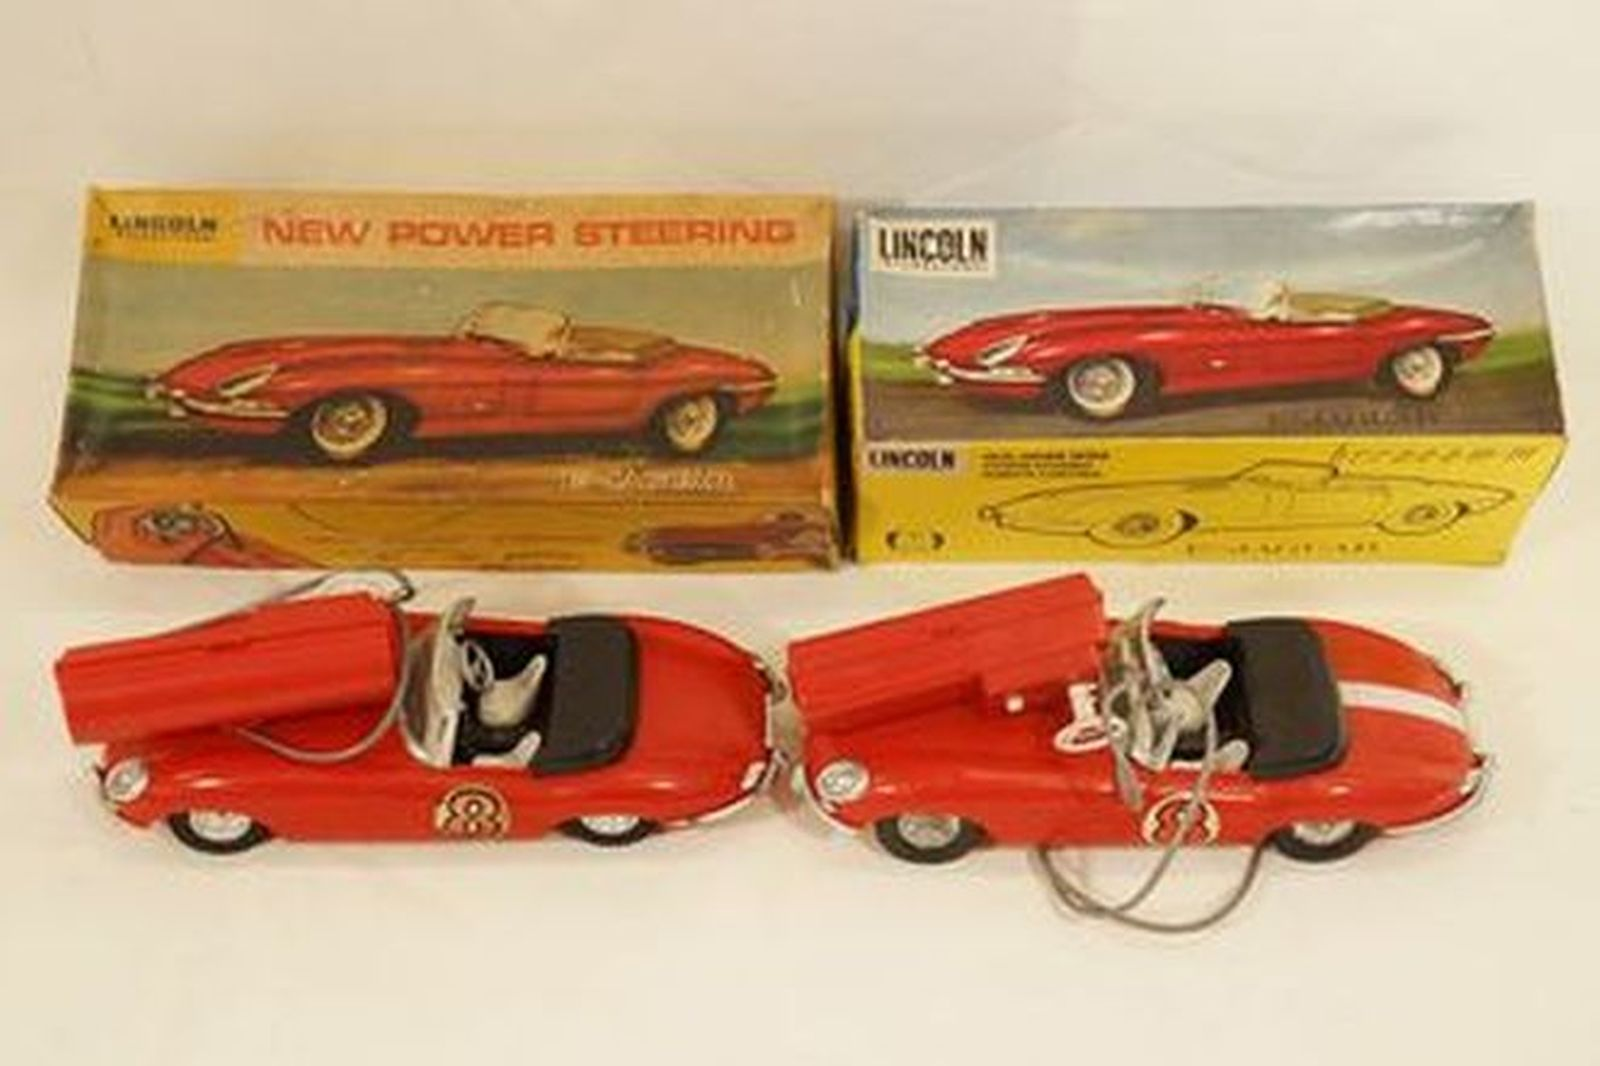 Sold: Model Cars x 2 - Lincoln International remote control